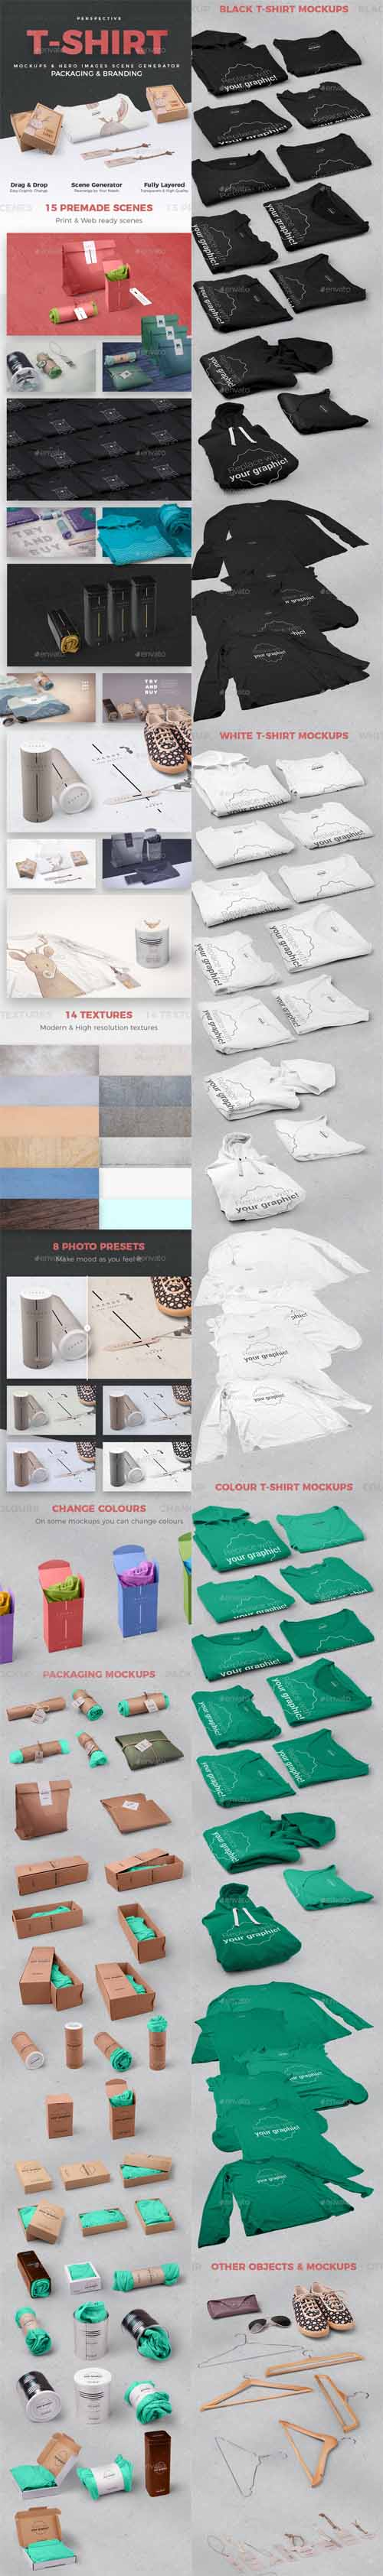 T-shirt and Packages Mockups and Hero Images Scene Generator / Perspective View / 19219184